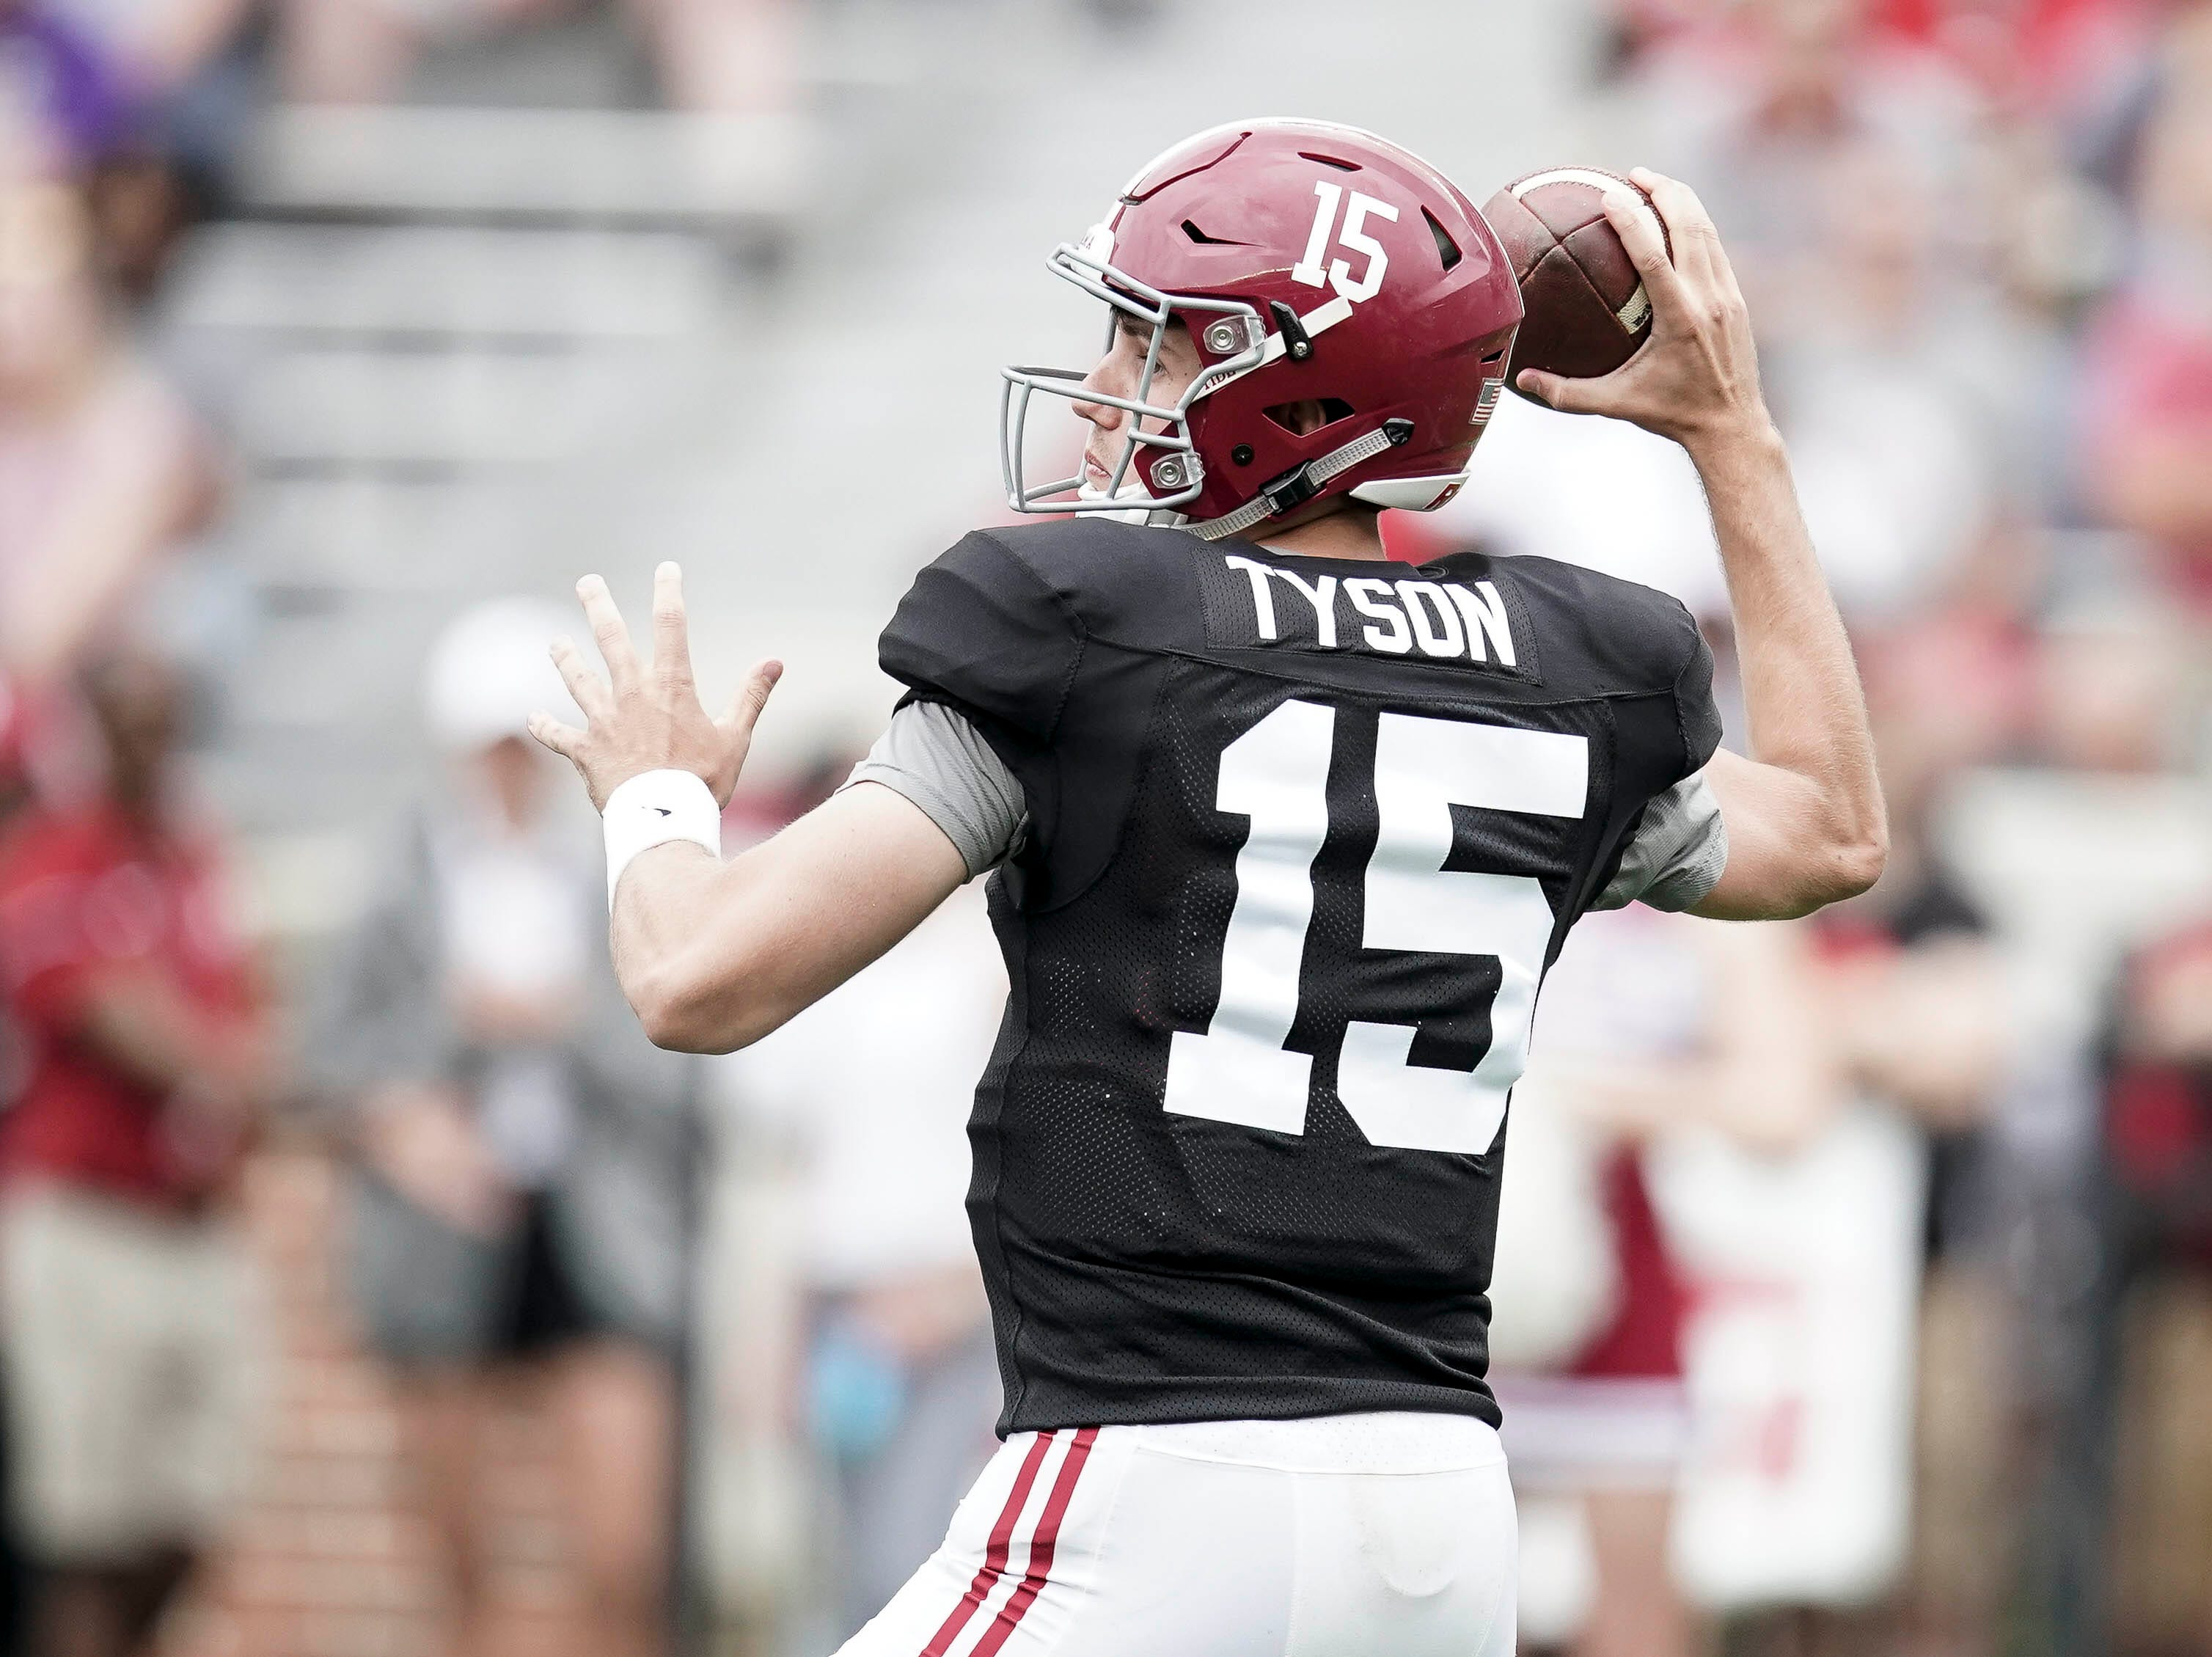 Apr 13, 2019; Tuscaloosa, AL, USA; Alabama Crimson Tide quarterback Paul Tyson (15) looks to pass during the spring game at Bryant-Denny Stadium. Mandatory Credit: Marvin Gentry-USA TODAY Sports